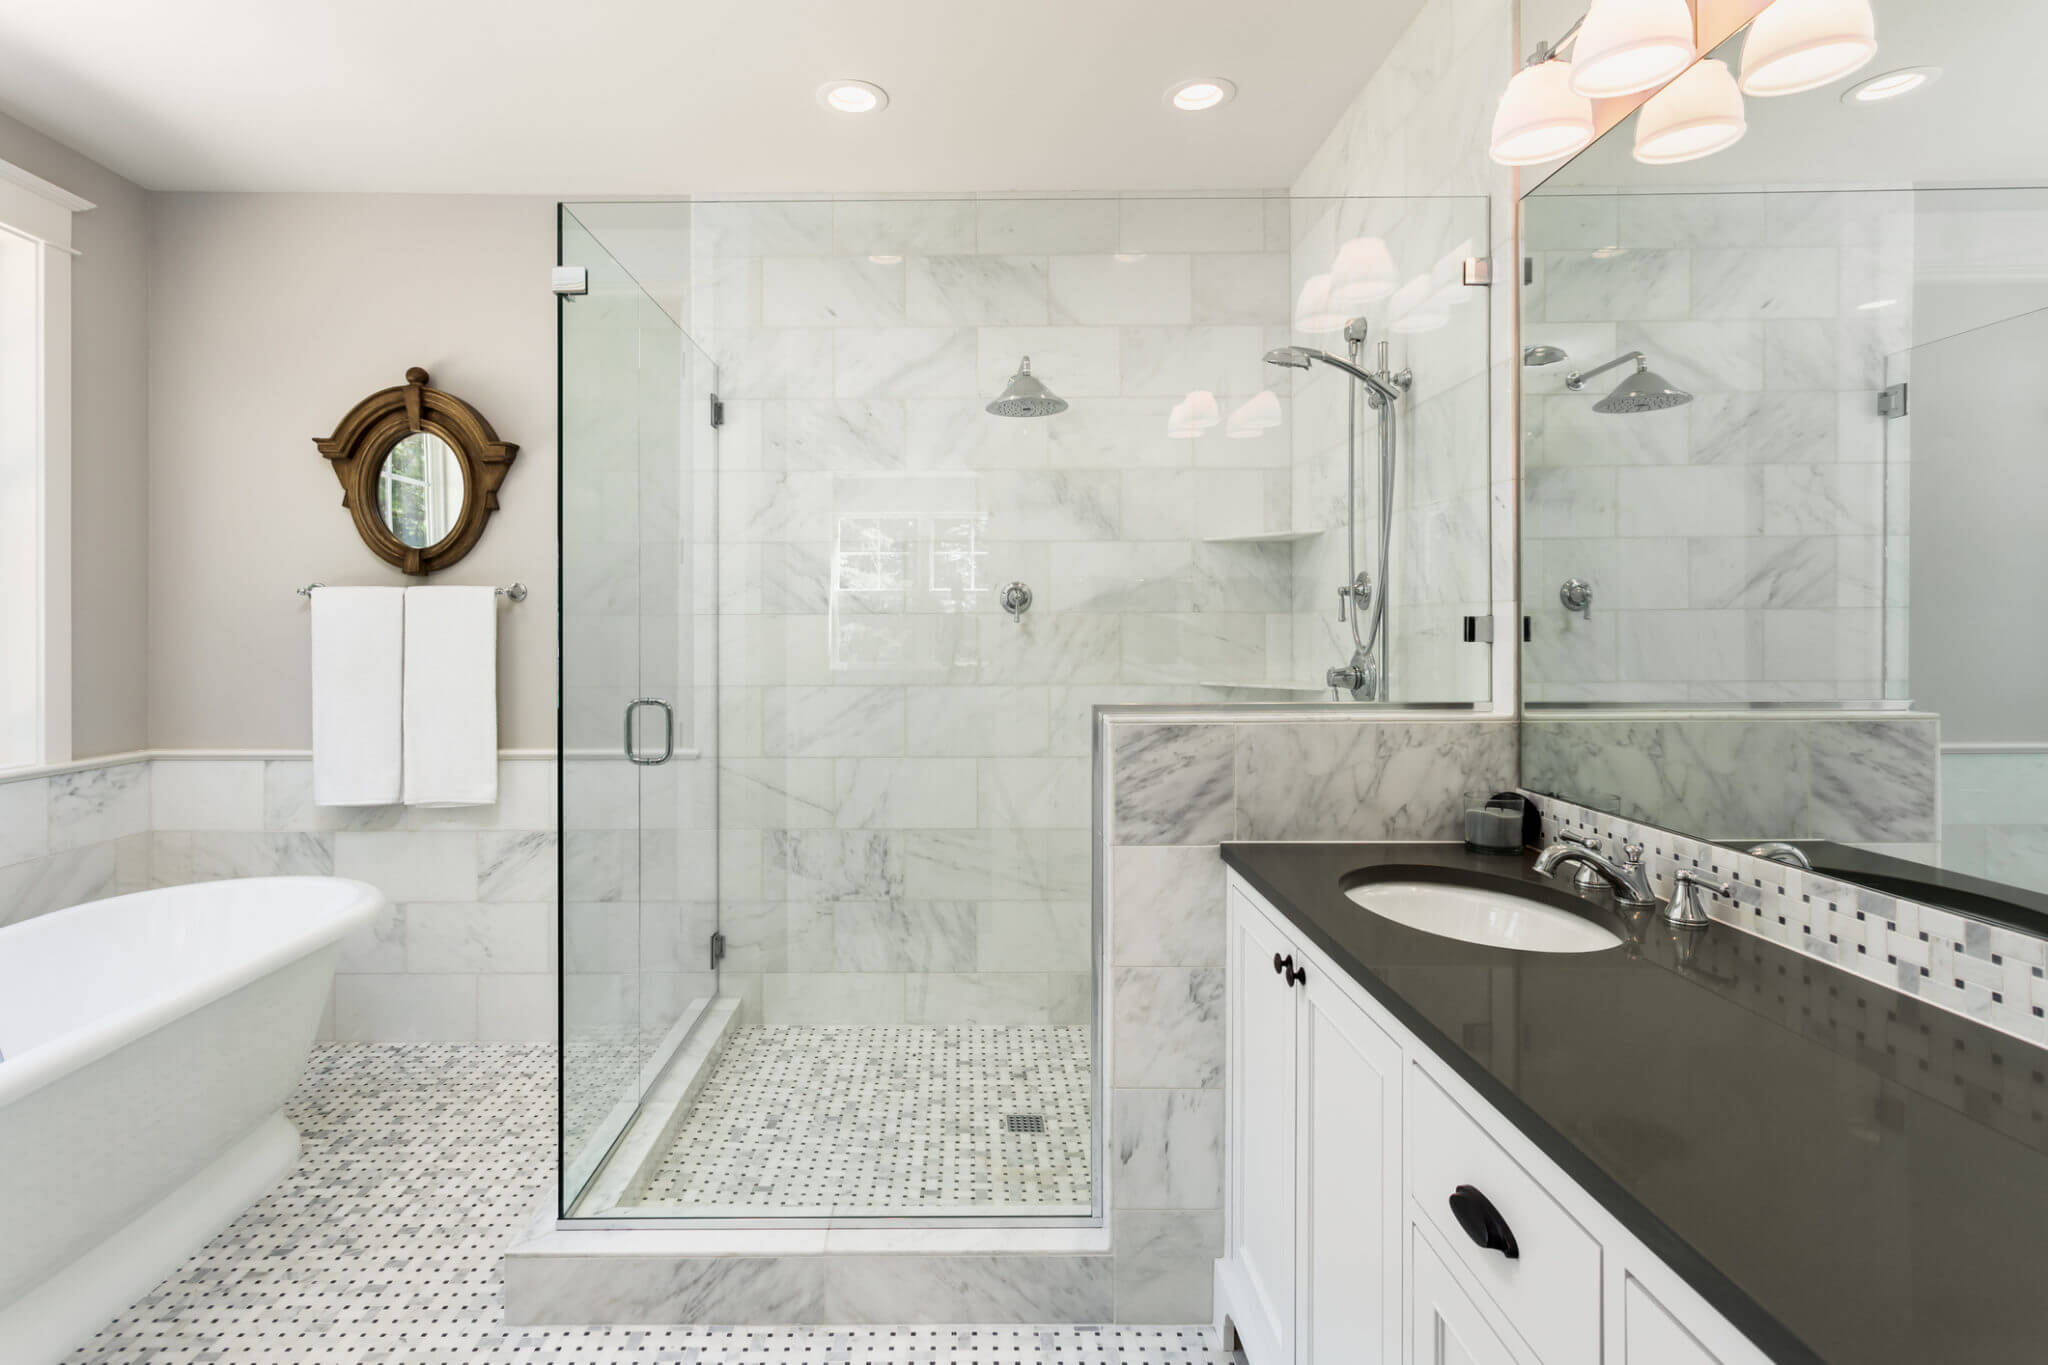 17 Inspiring Before And After Bathroom Renovations Why Tile